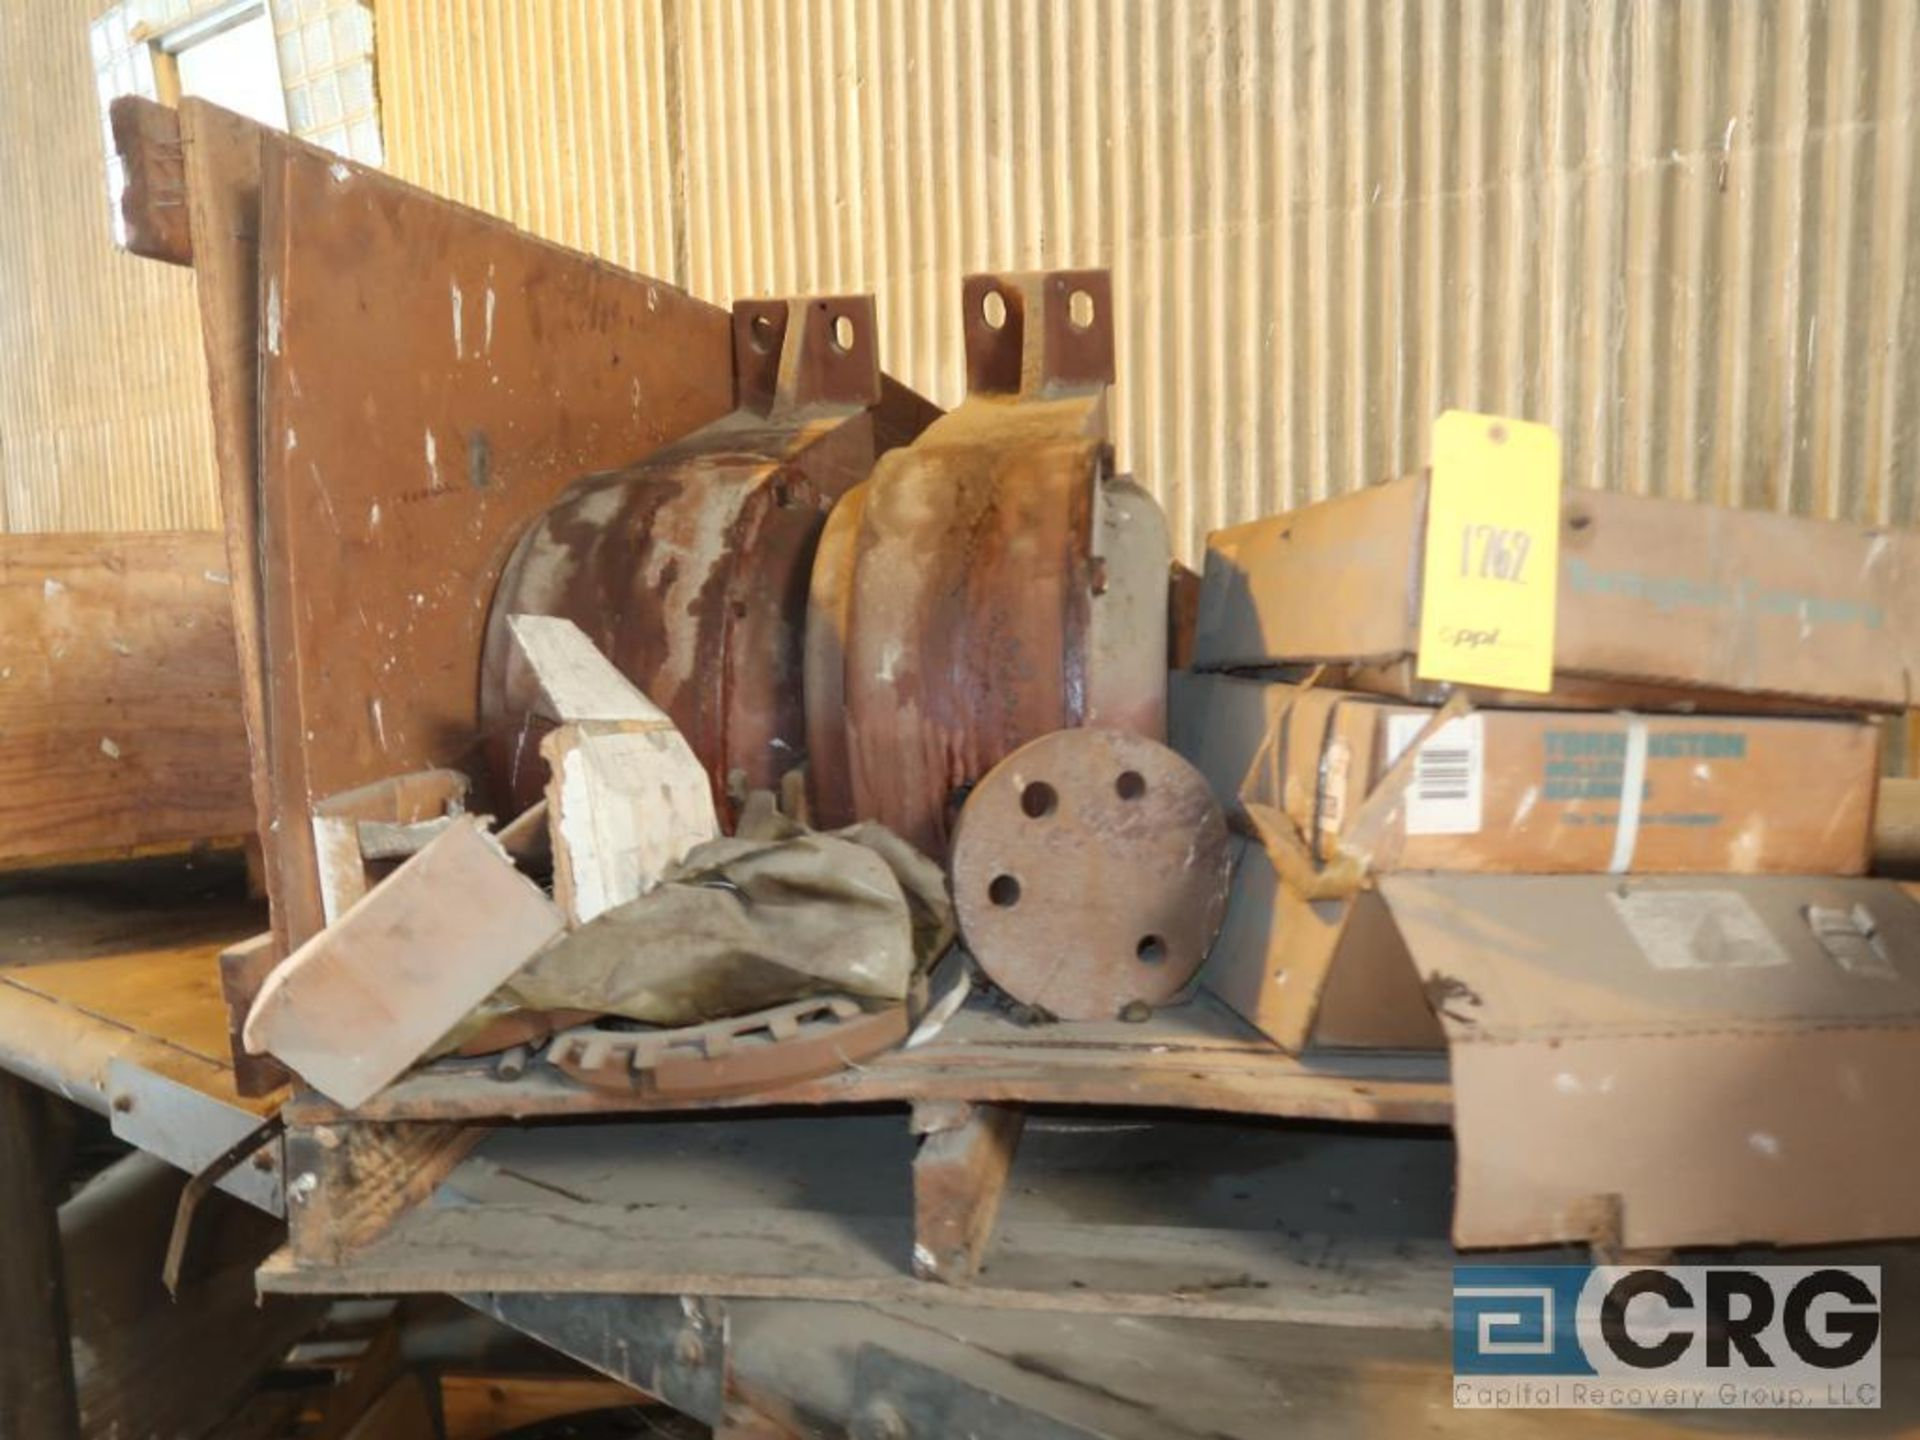 Lot of assorted motor, gear bearing housing, gear drive on metal rack (Next Bay Cage Area) - Image 4 of 16